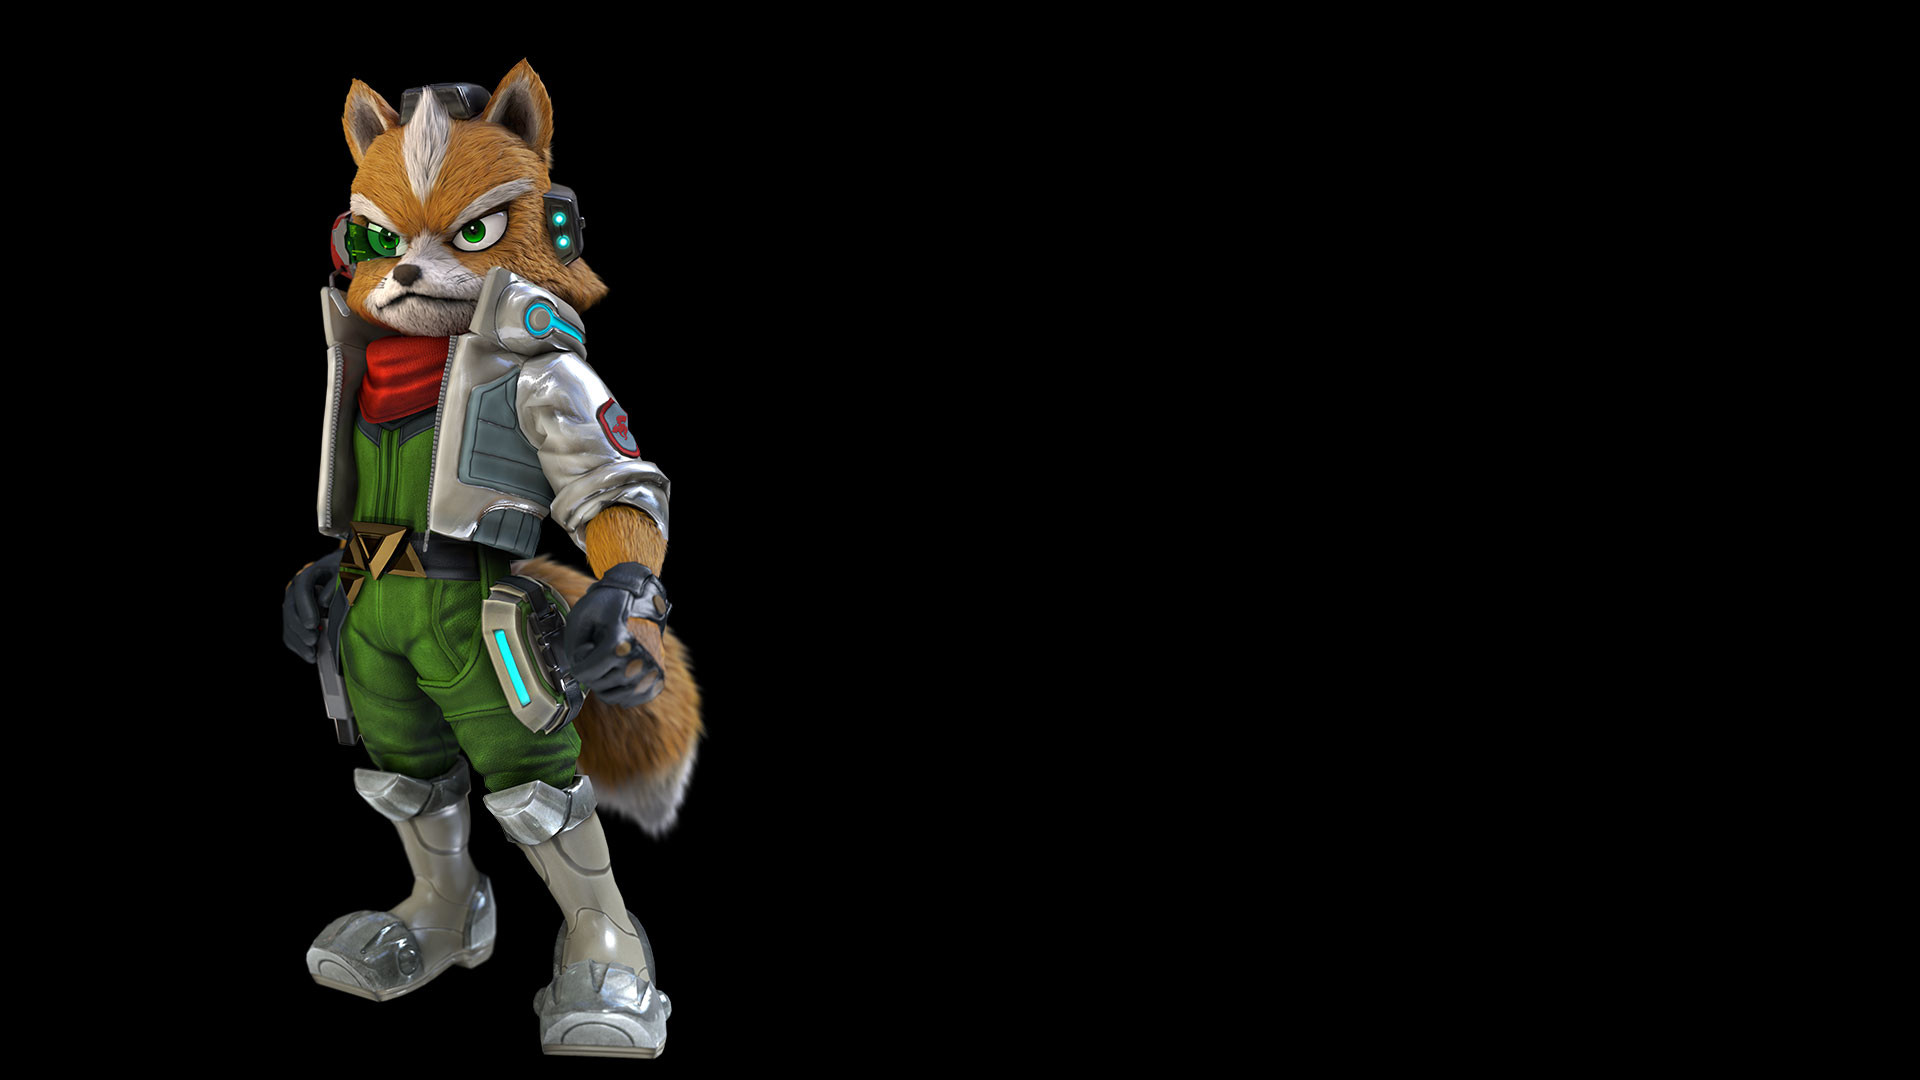 1920x1080 Fox's new design, taken from Nintendo's website. Thoughts?